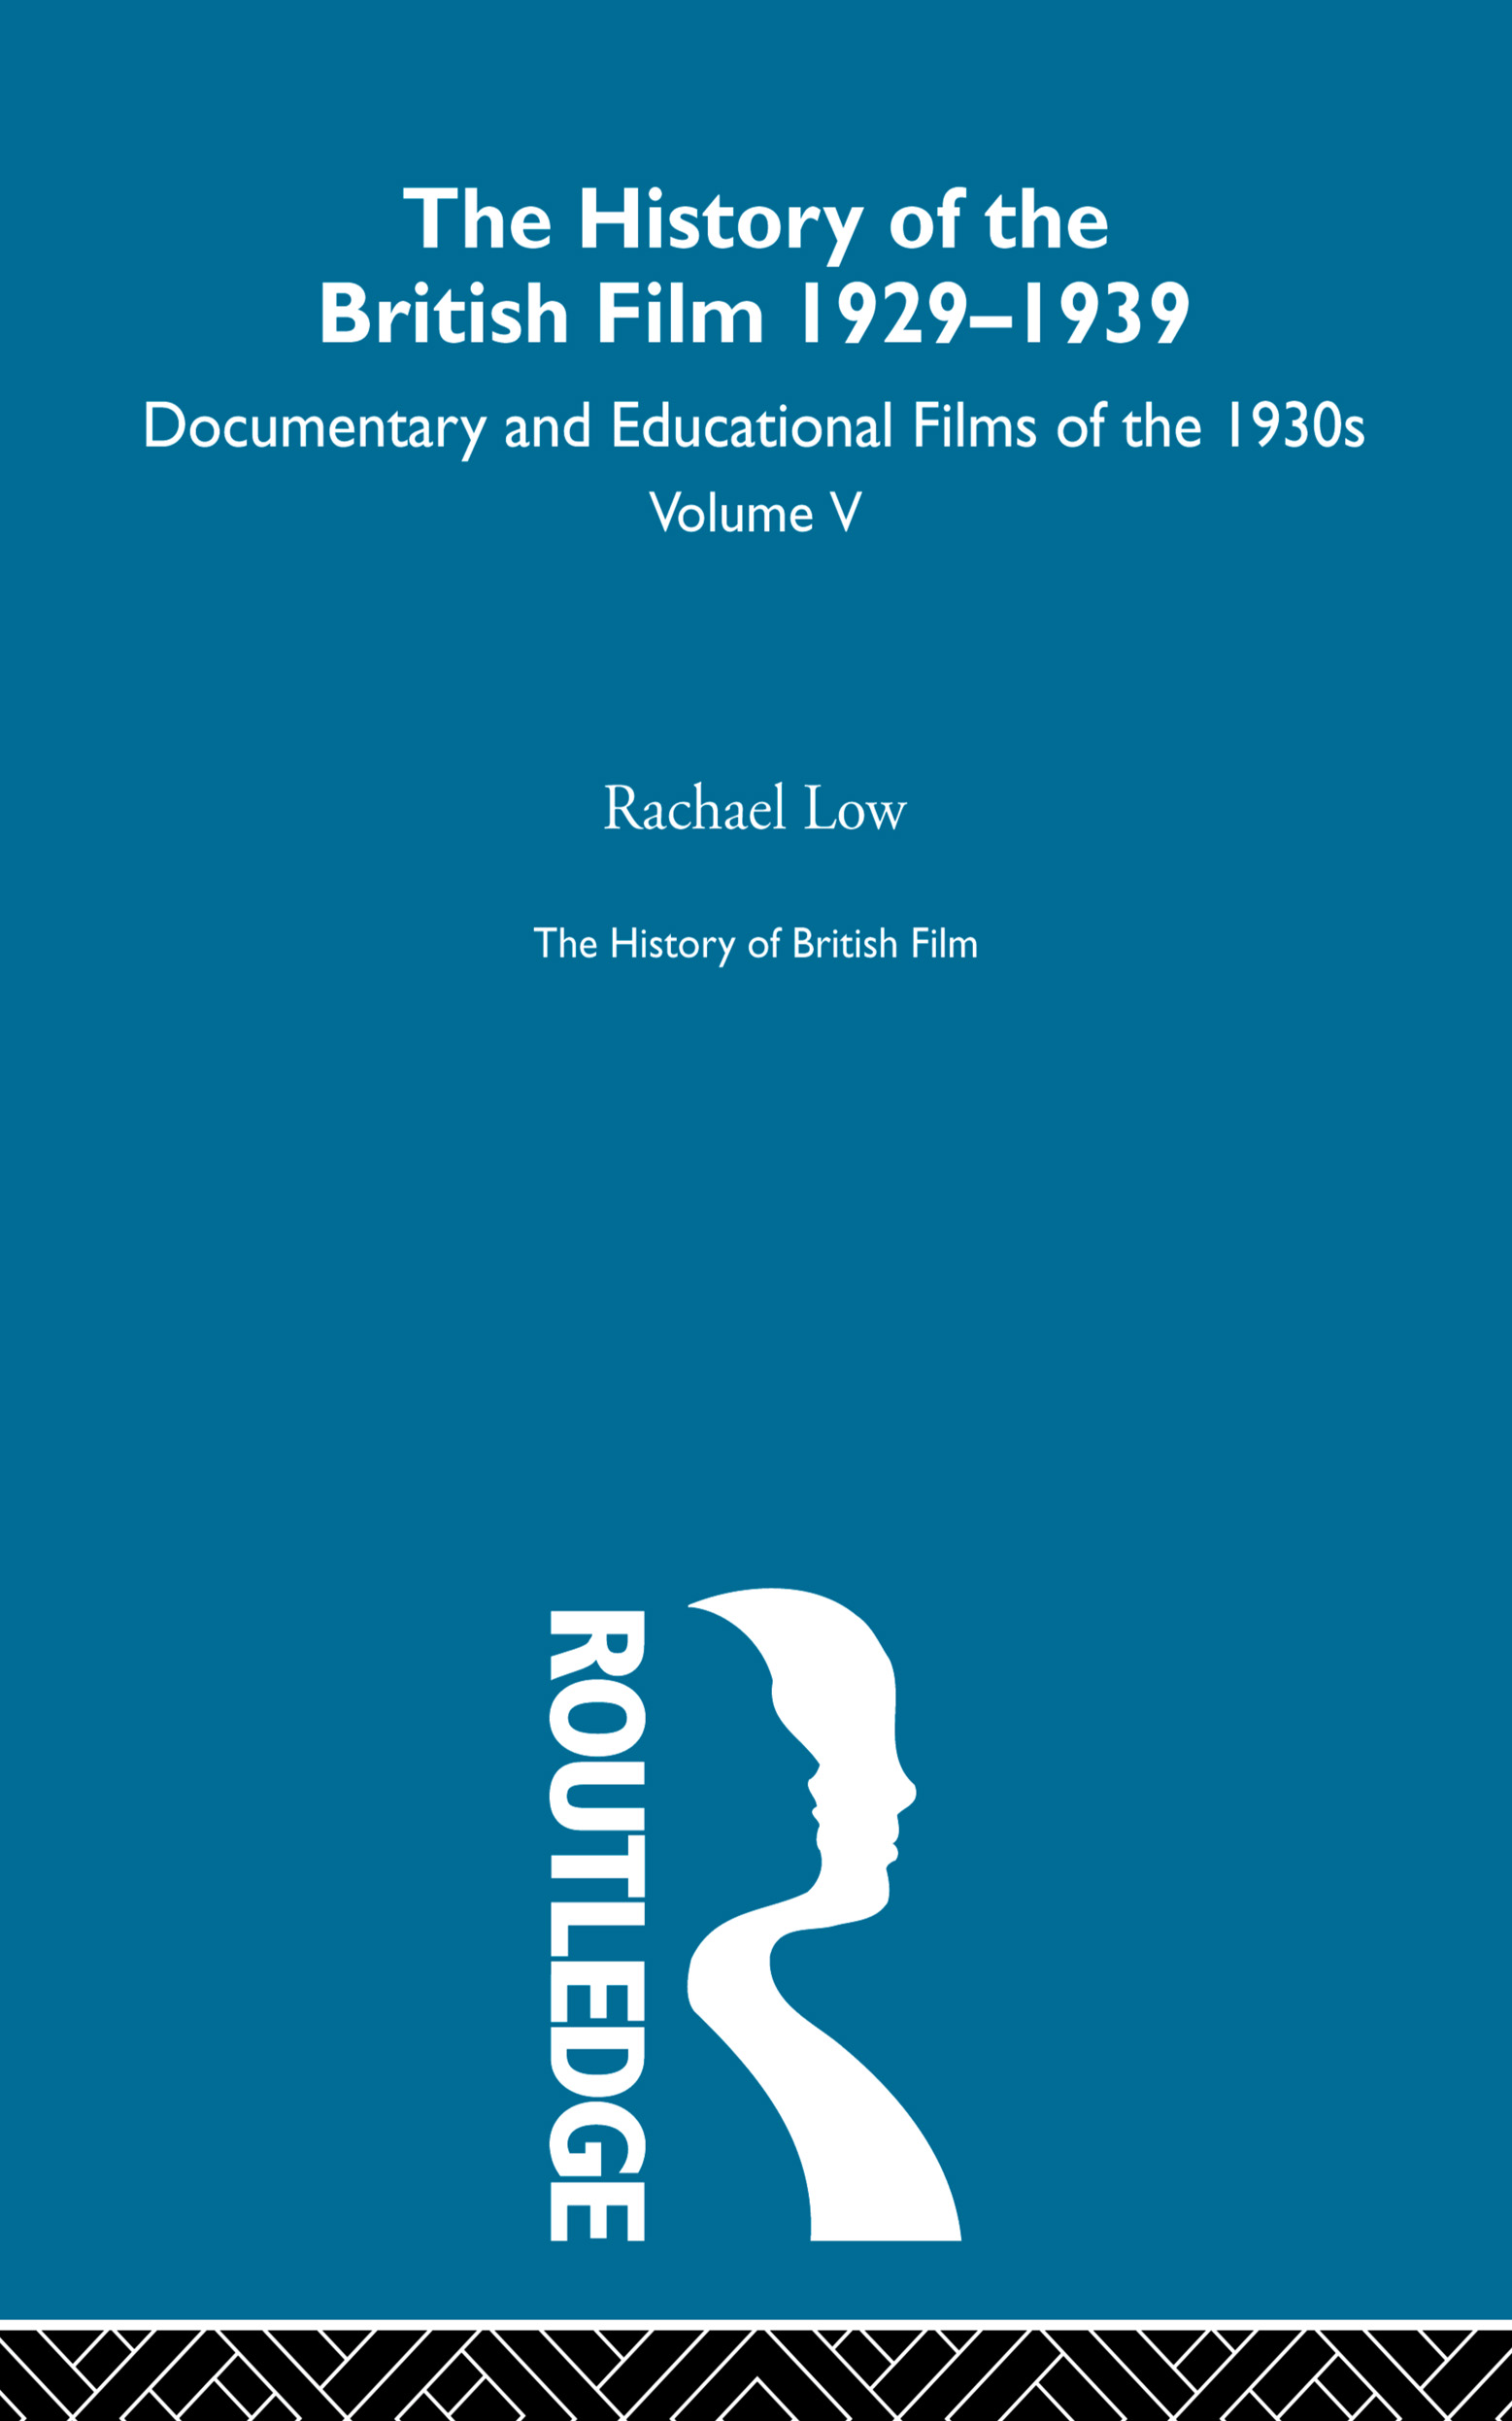 The History of British Film (Volume 5): The History of the British Film 1929 - 1939: Documentary and Educational Films of the 1930s, 1st Edition (Paperback) book cover